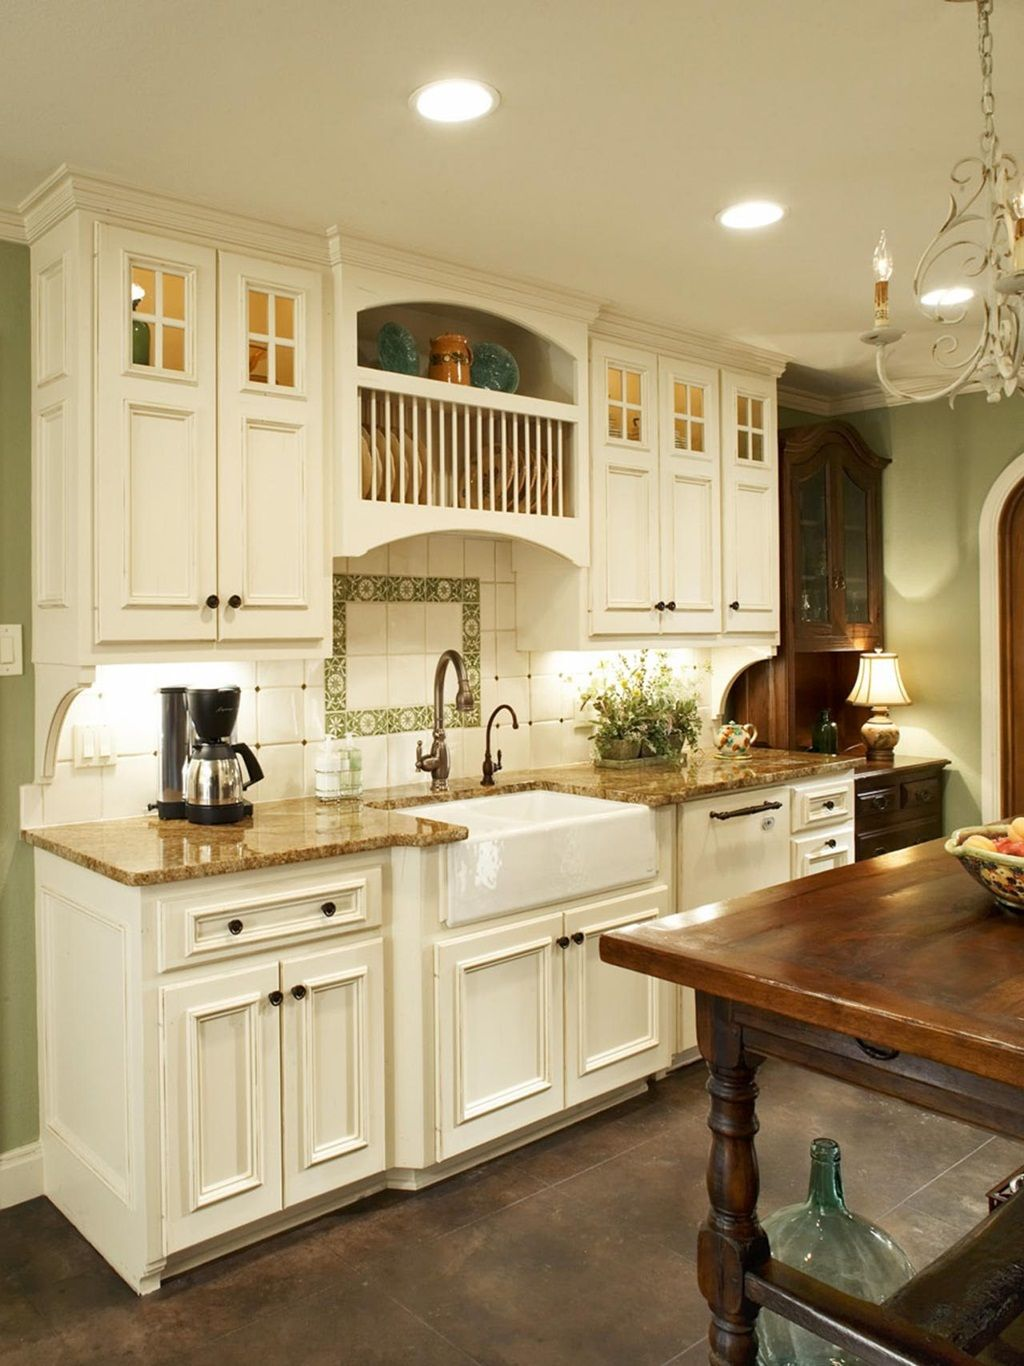 2019 country kitchen cabinet warmth comfort and traditional elegance